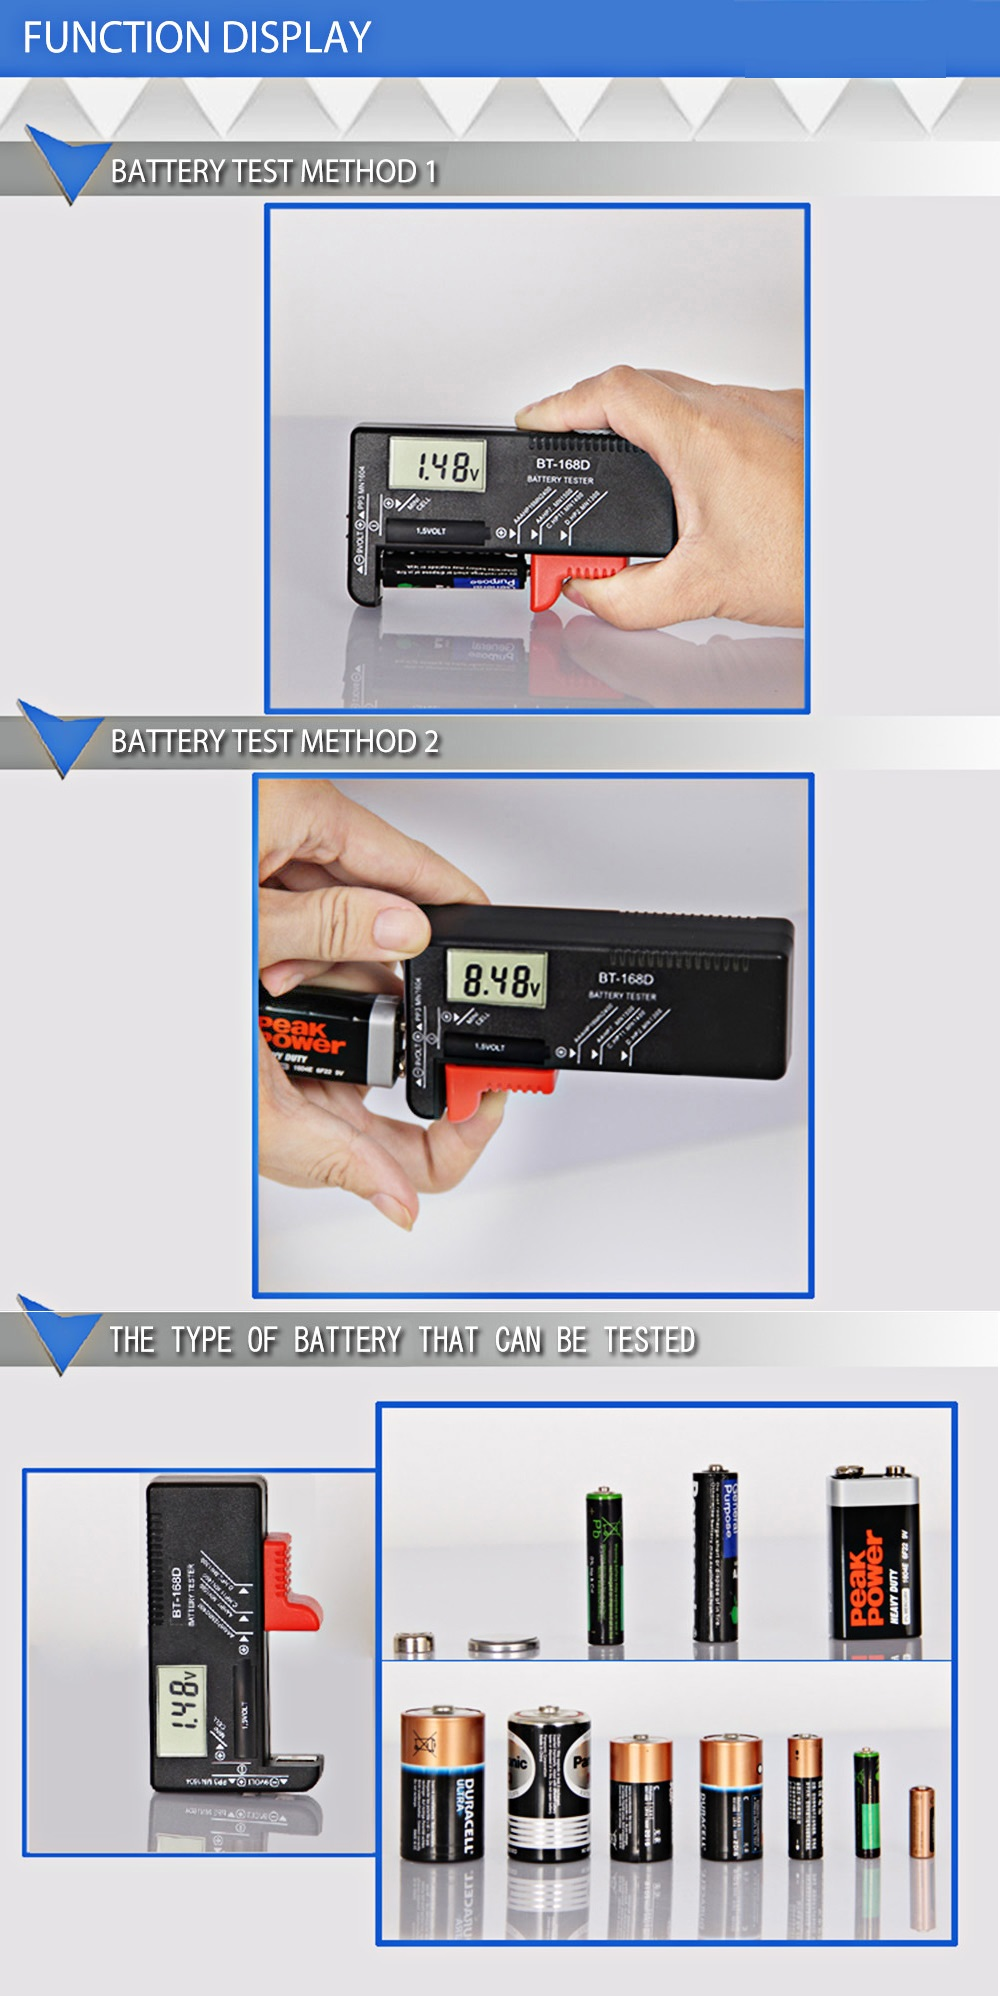 ANENG BT-168D Digital Universal Battery Checker Volt Checker For 9V 1.5V And AA AAA Cell Batteries LCD Display Battery Tester Measuring Tools